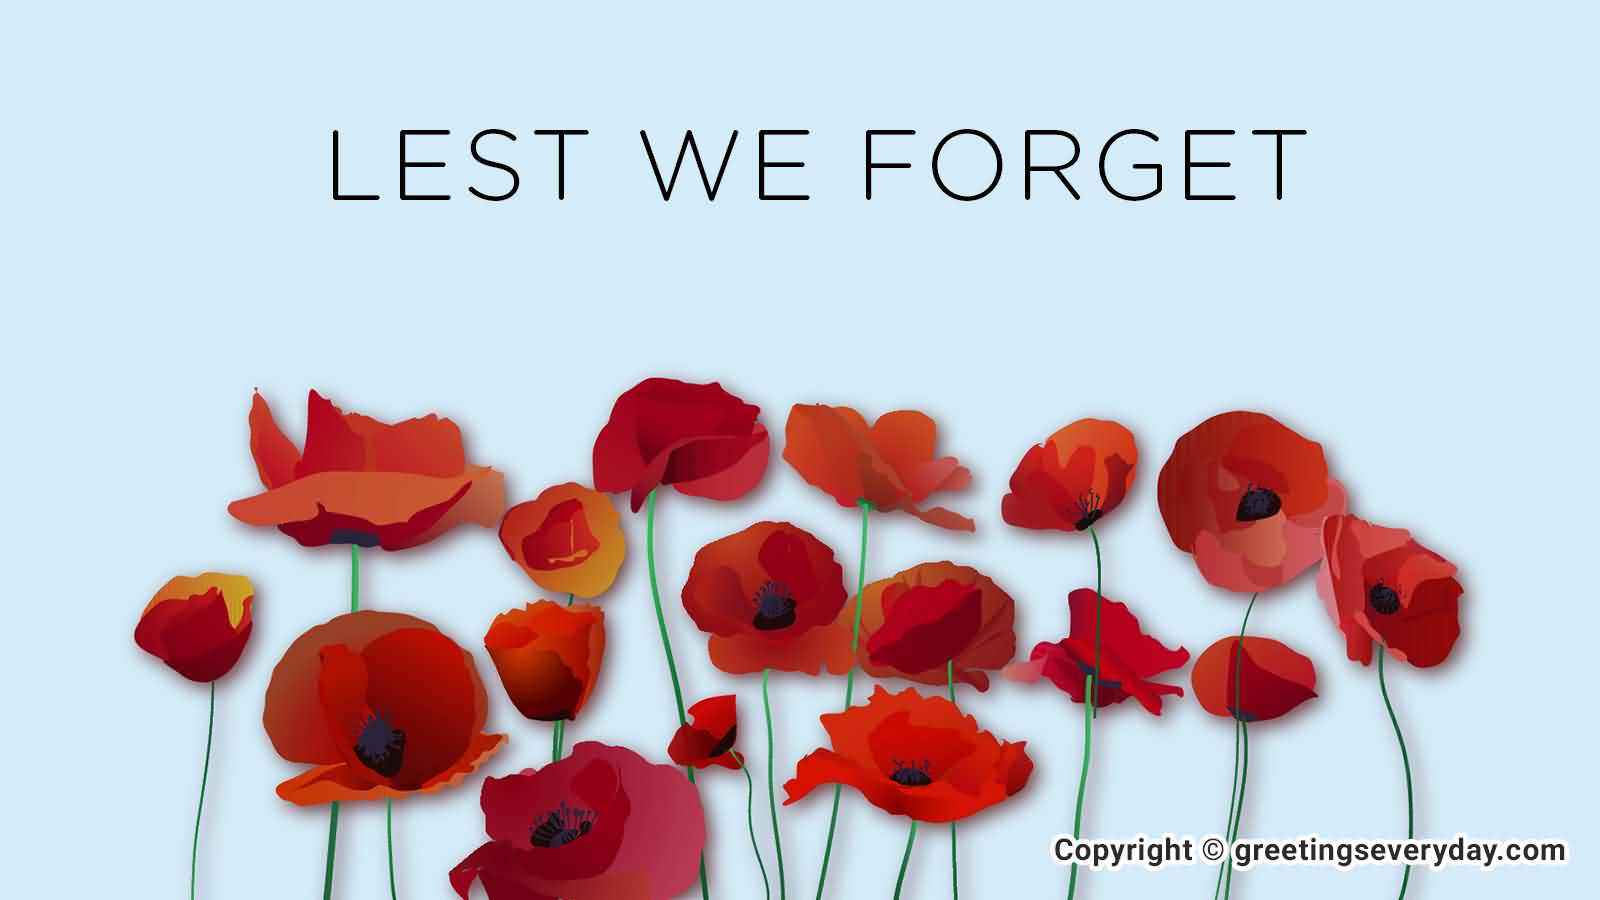 17-Remembrance Day Wishes